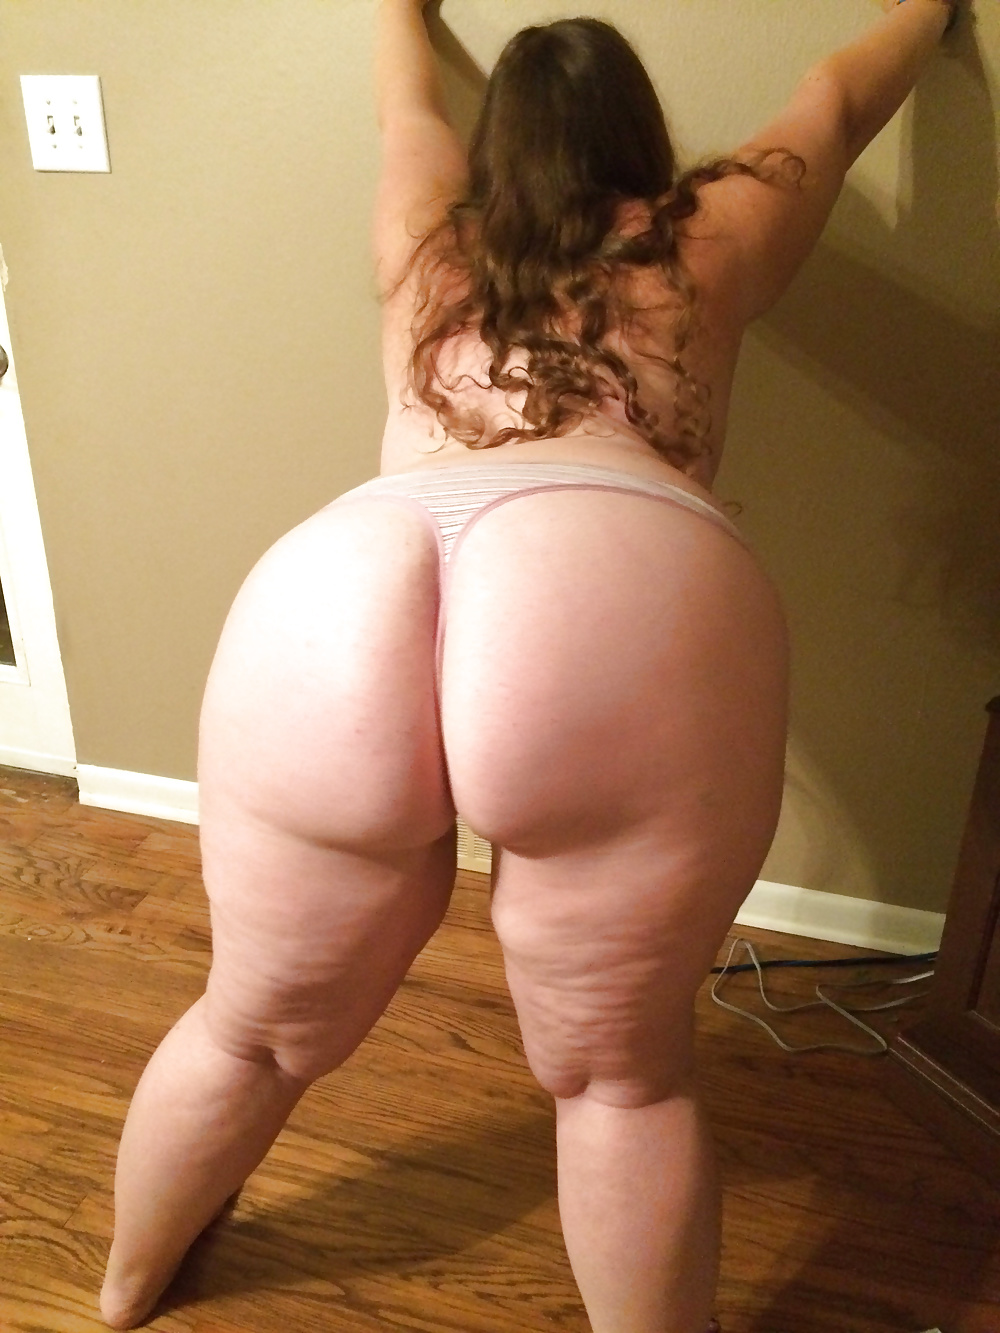 Chubby girls ass pics, clip finder pussy